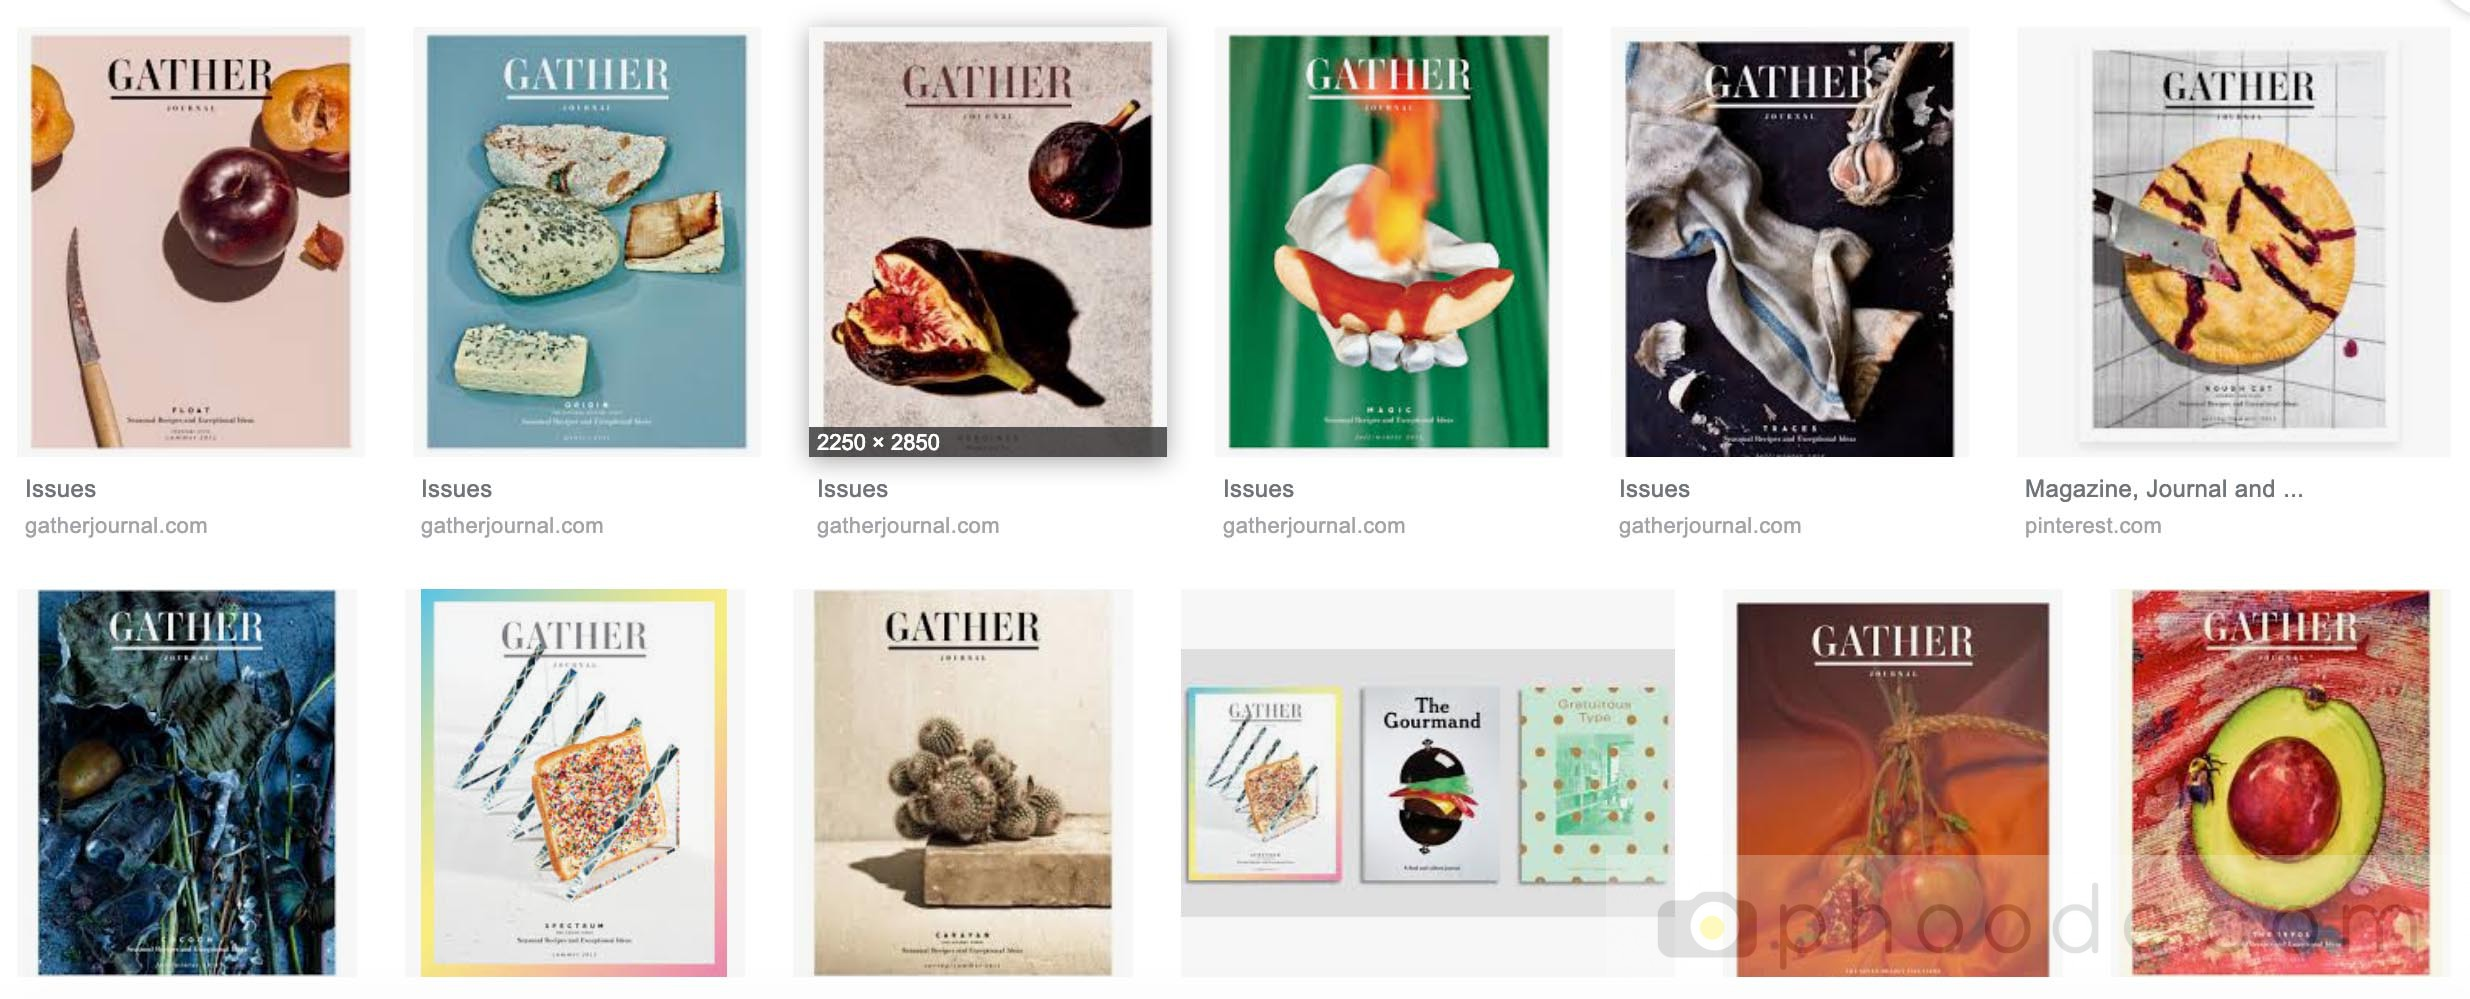 food magazine photoeditor cover; food photography jobs; food photography career; art food magazine cover; international platform for food photographers; international online association of food photographers; food photography news; food photography awards; trends in food photography; contest food photography; website for people who want to become serious food photographers; we are reviewing food photography portfolios; curating the best food photography; food photography educators/mentors; creative director for food photography, culinary creative director, gather magazine cover